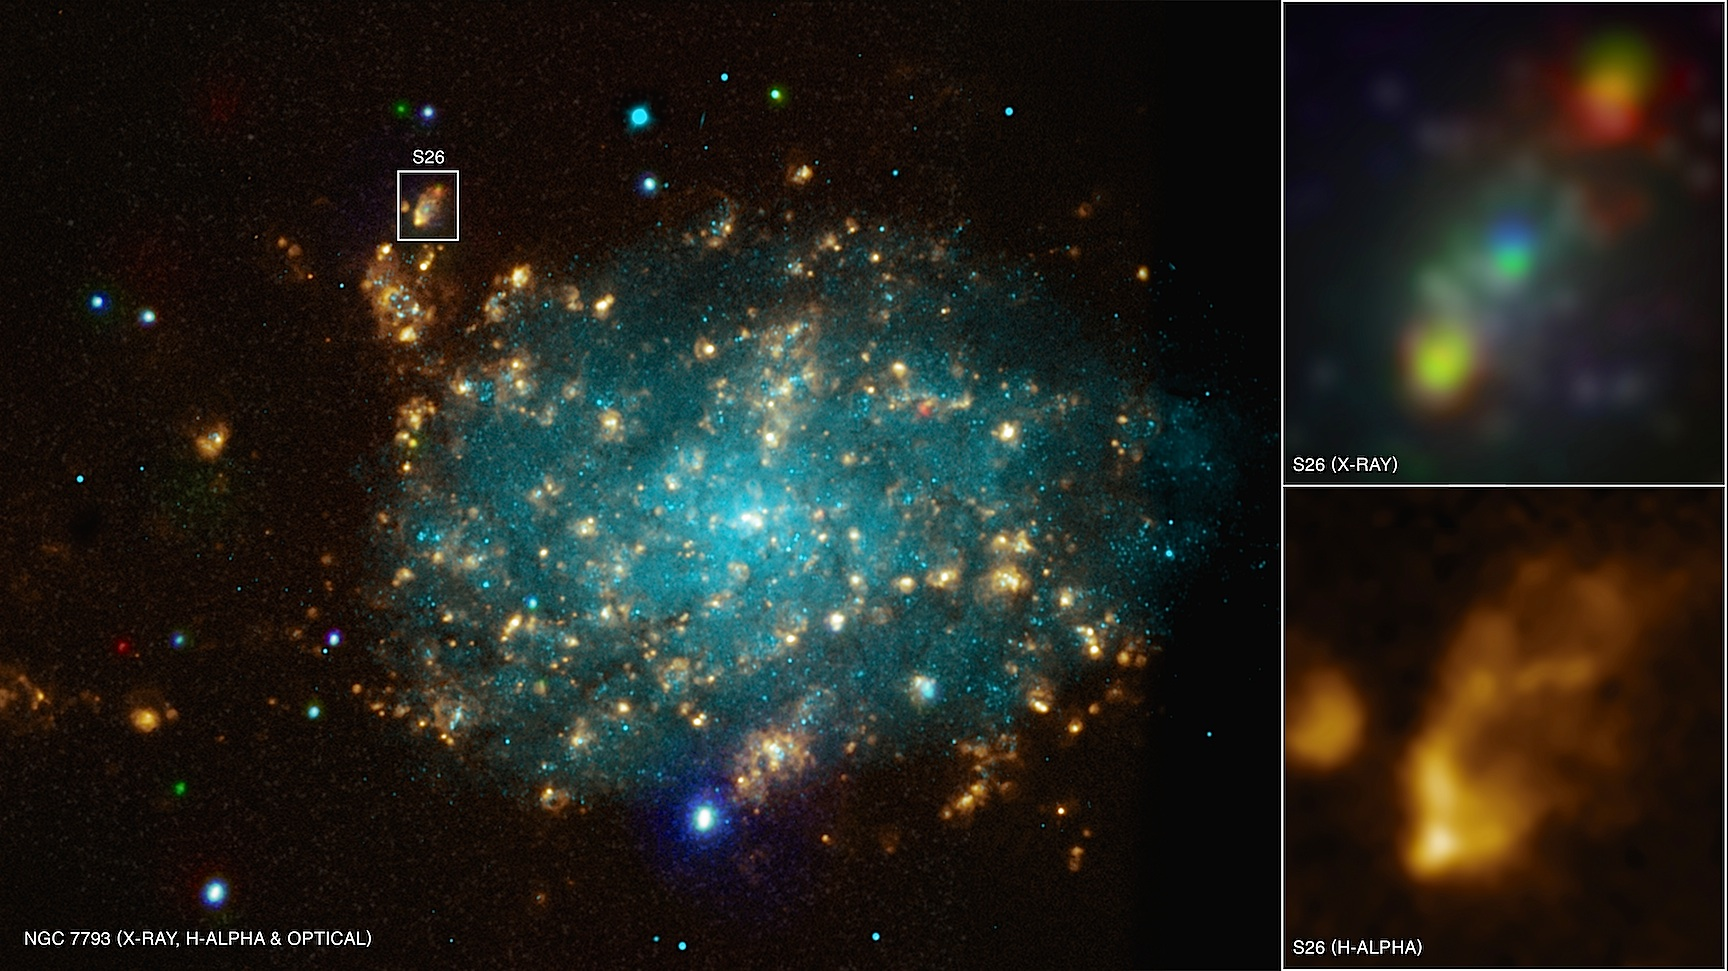 Combined data from Chandra (red, green, and blue) as well as optical light (light blue) and hydrogen emission (gold) reveals a microquasar in the galaxy NGC 7793.  This system contains a stellar-mass black hole that is being fed by a companion star, shown in X-rays in the upper inset.  Material falling onto the black hole is blowing outward via two powerful jets that plow into the surrounding gas and heat it.  The lower inset shows the nebula that is being illuminated by the output from these jets.